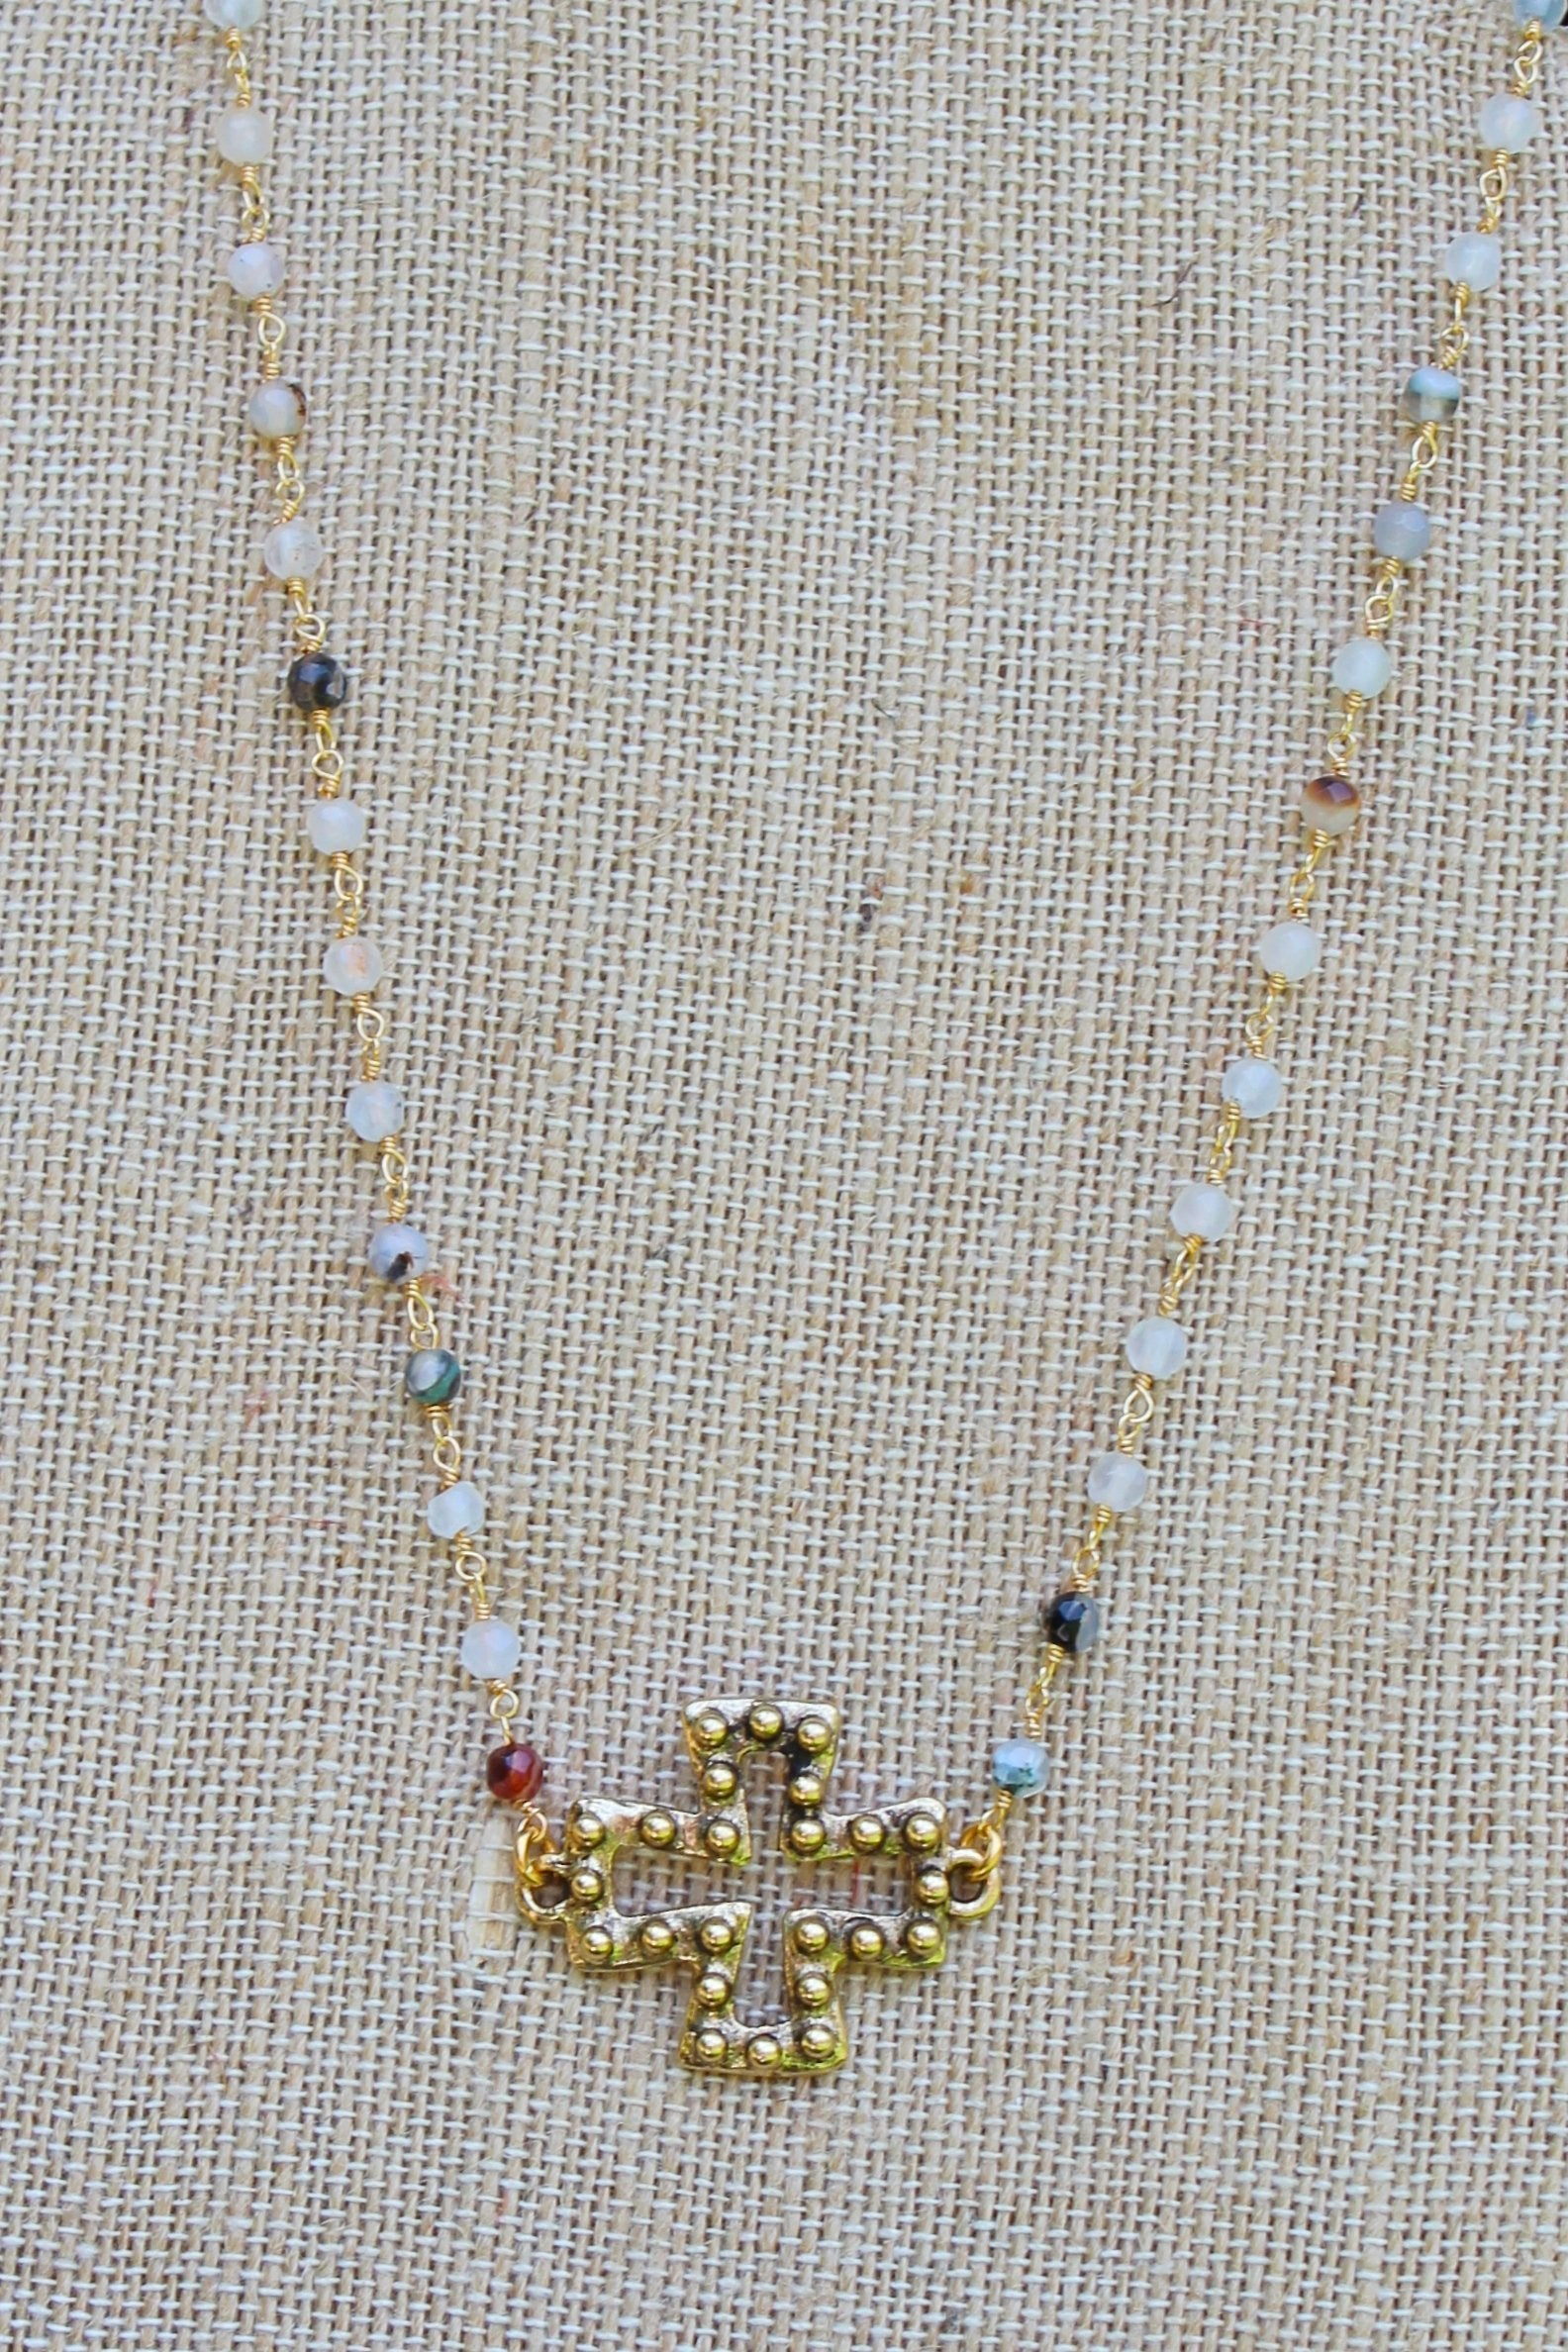 N111G; Goldtone Studded Cross; 3mm Black Agate Goldtone Chain; Approximately 16 inches; ; ; ; Majestees